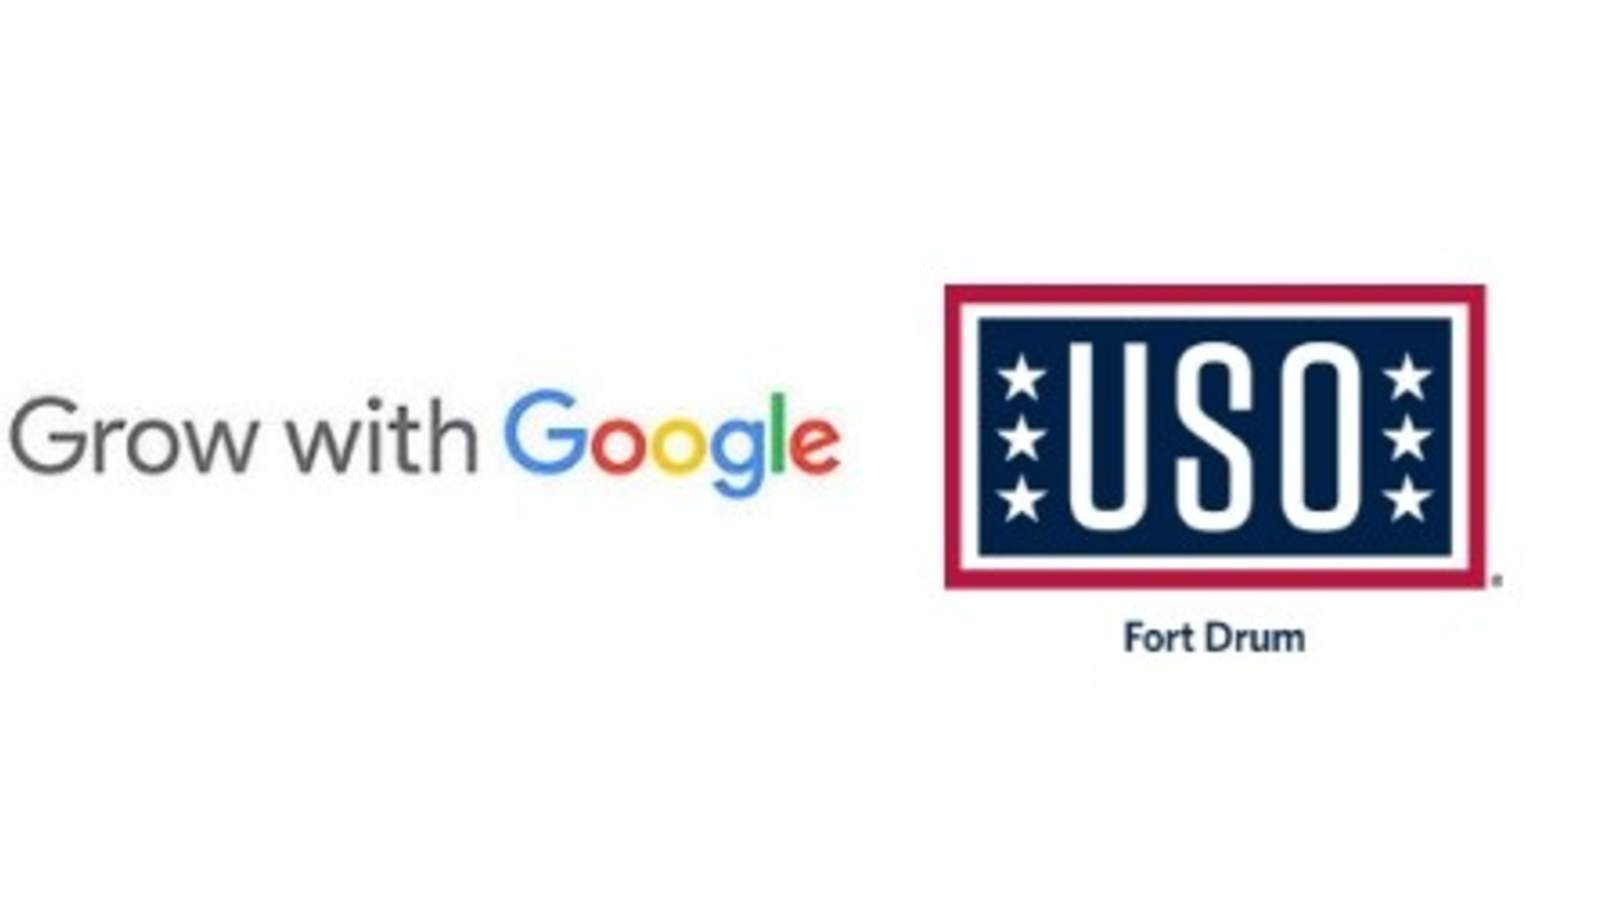 Google It Support Professional Certificate Program Uso Fort Drum